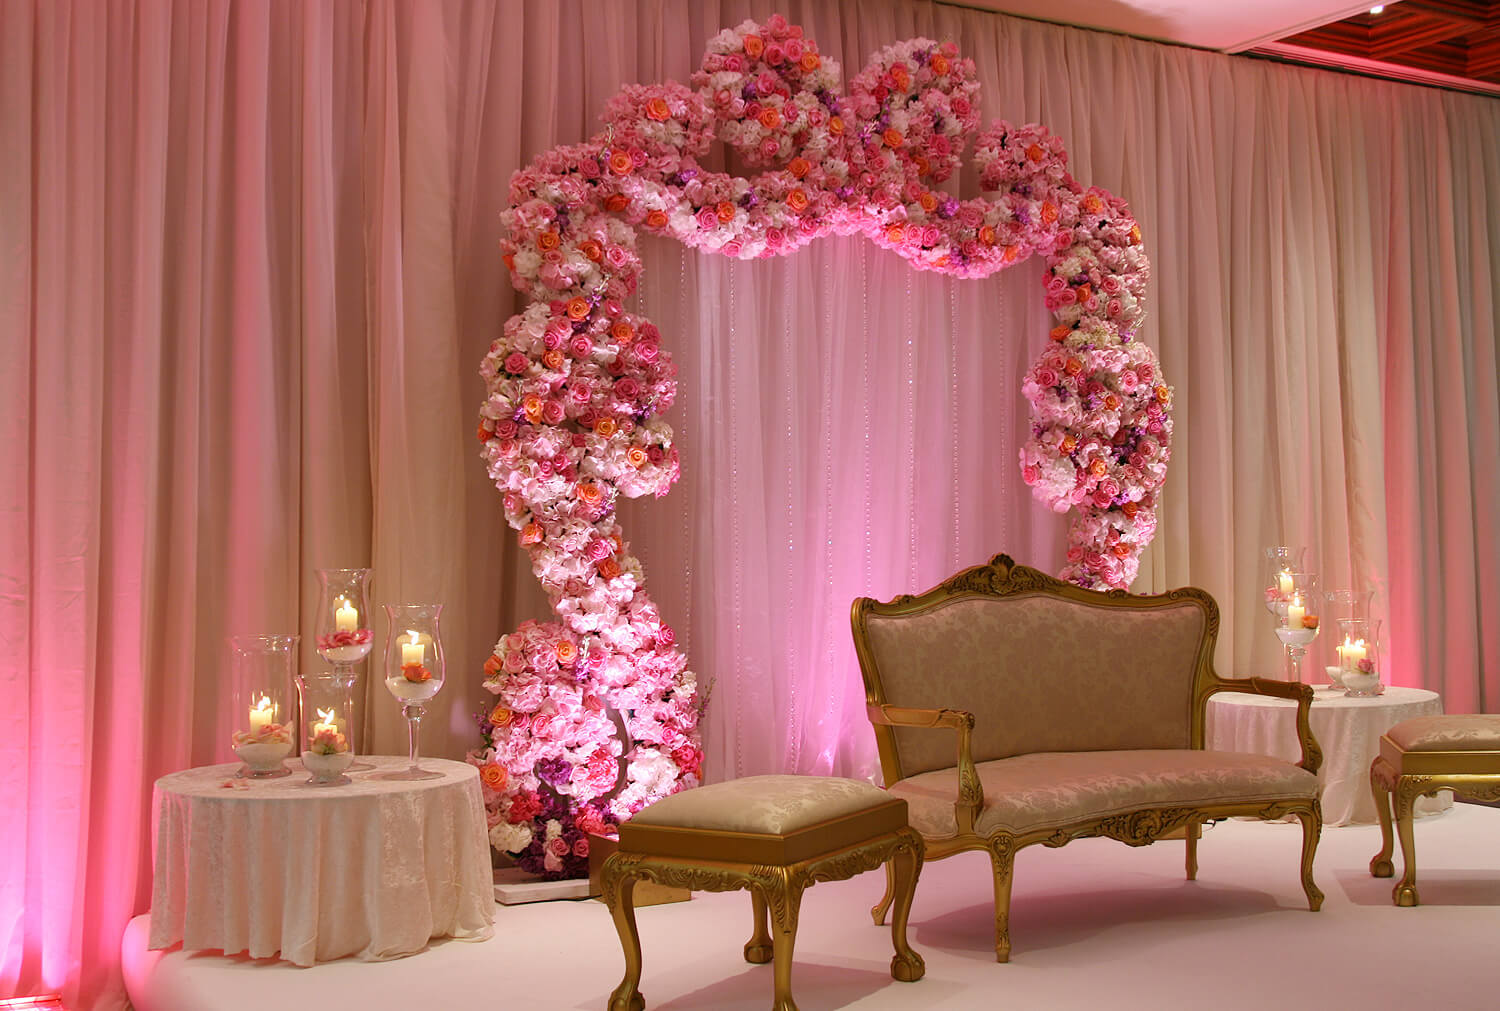 Best Stage Decoration Ideas For A Wedding In 2018 And After